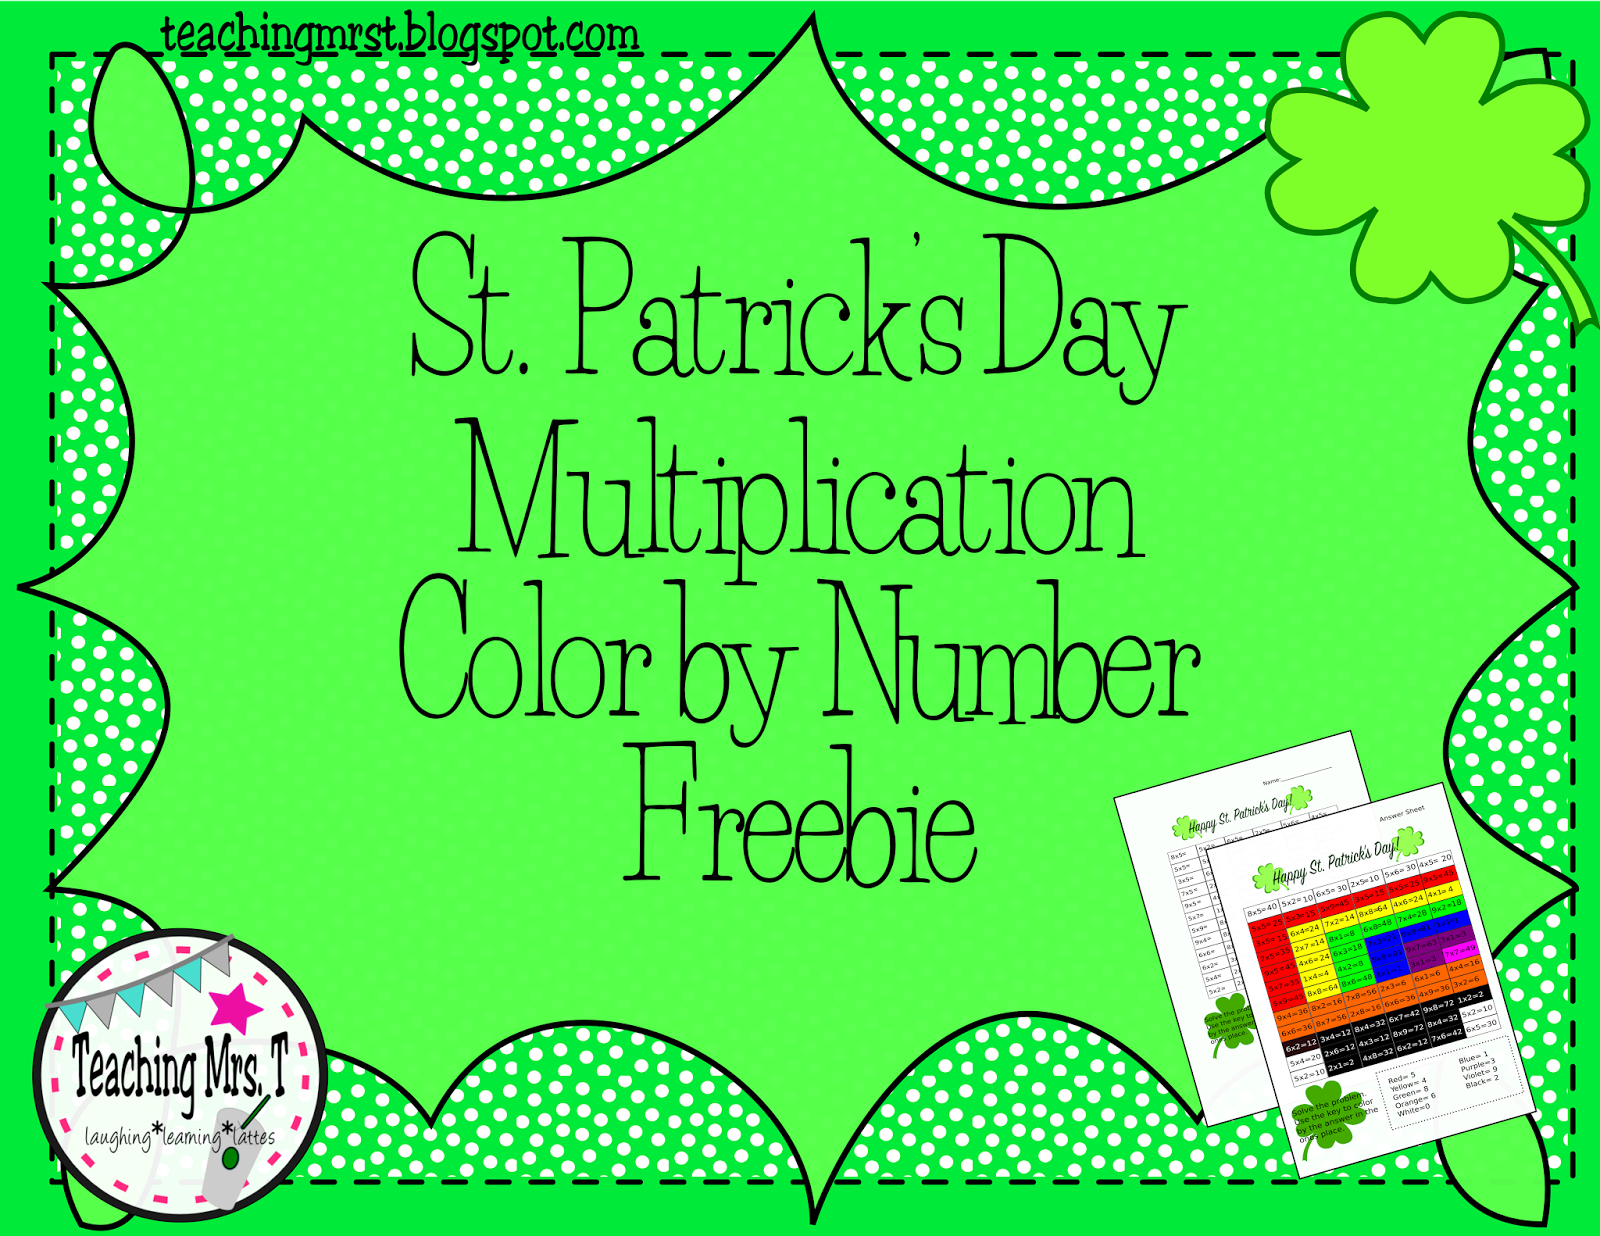 Multiplication Color By Number Freebie For St Patrick S